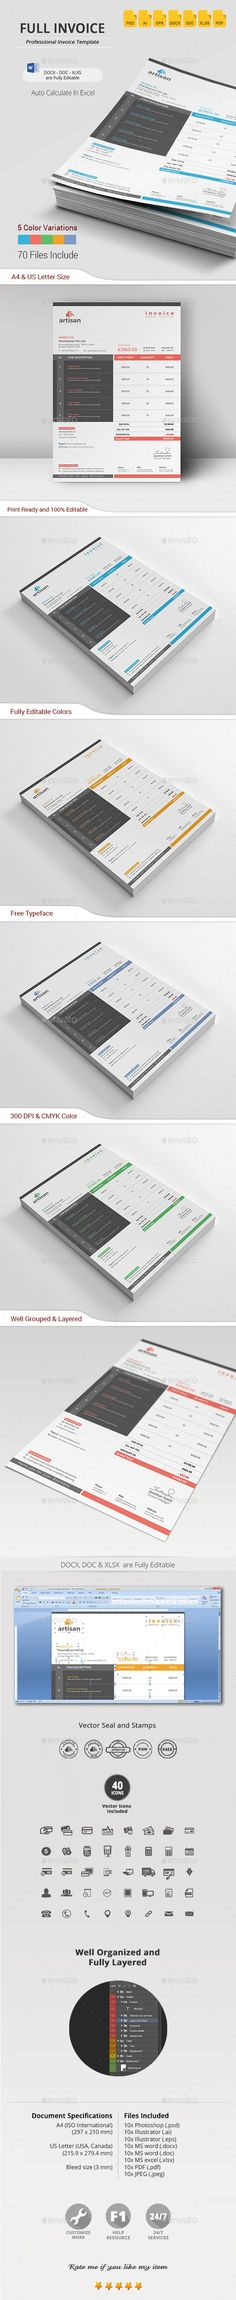 Commercial Proposal Format Inspiration The Business Proposal Template  Business Proposal Template .